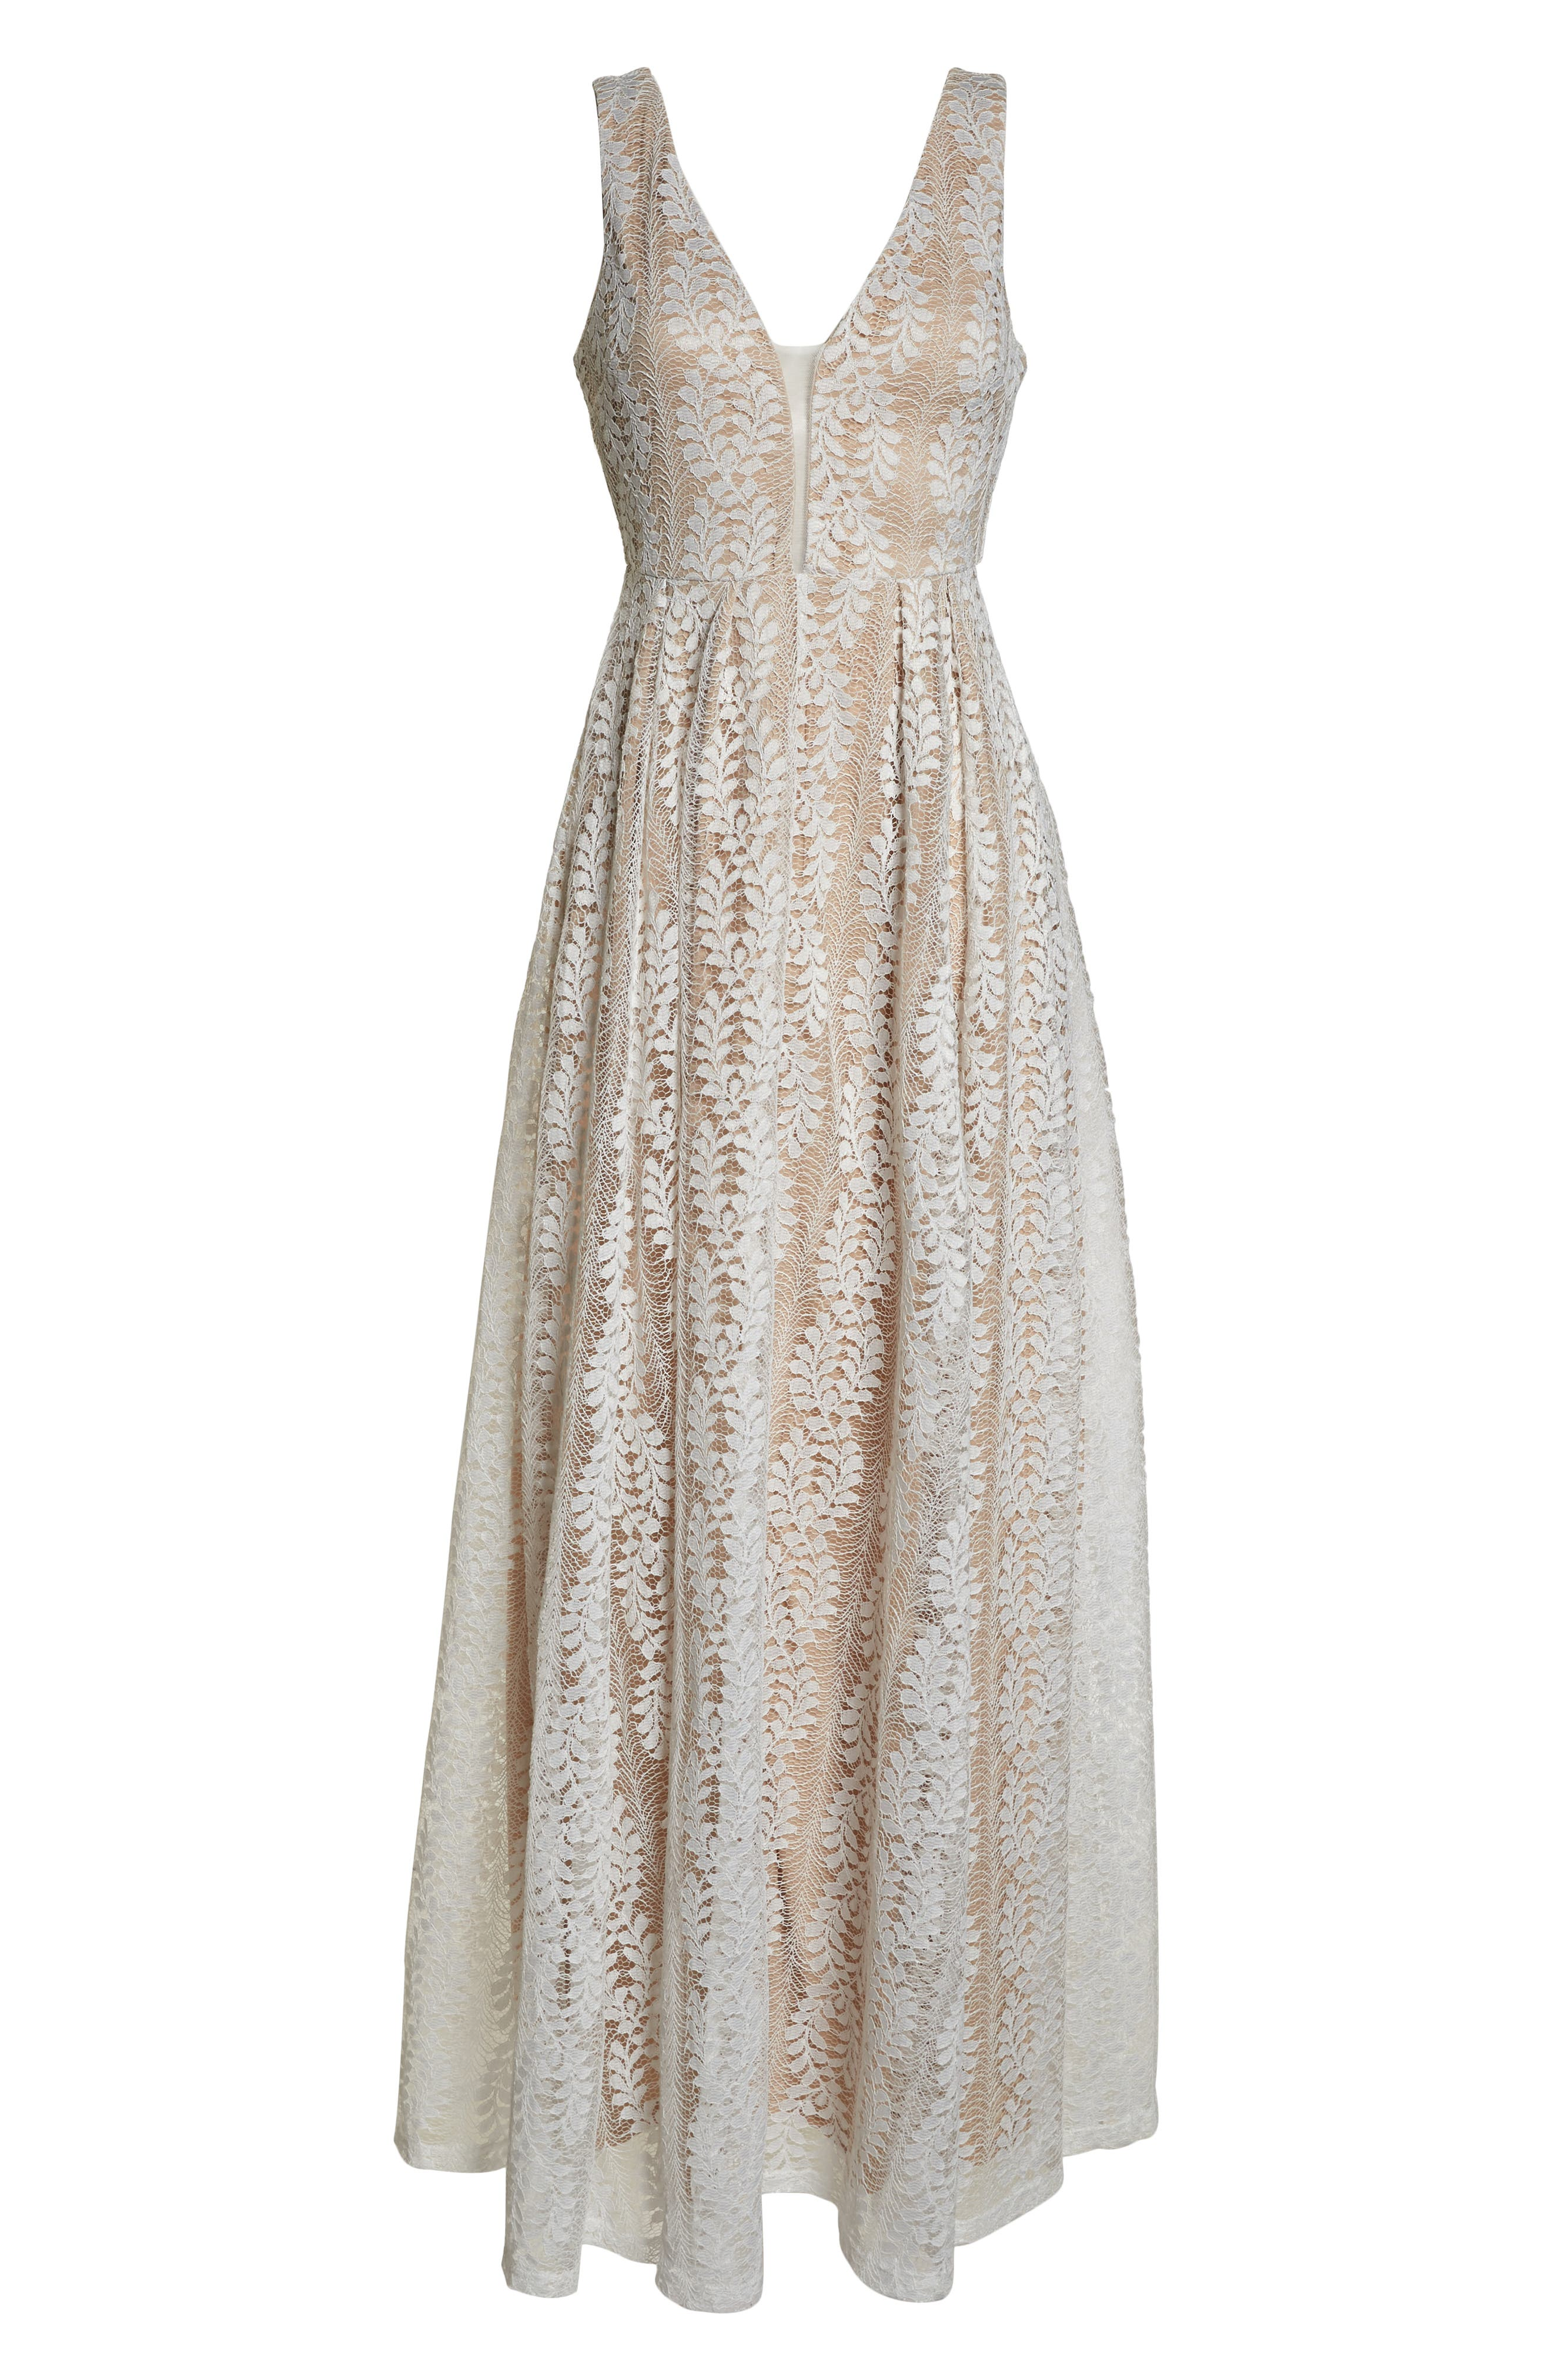 LULUS, Eliana Lace V-Neck Gown, Alternate thumbnail 7, color, WHITE/ NUDE